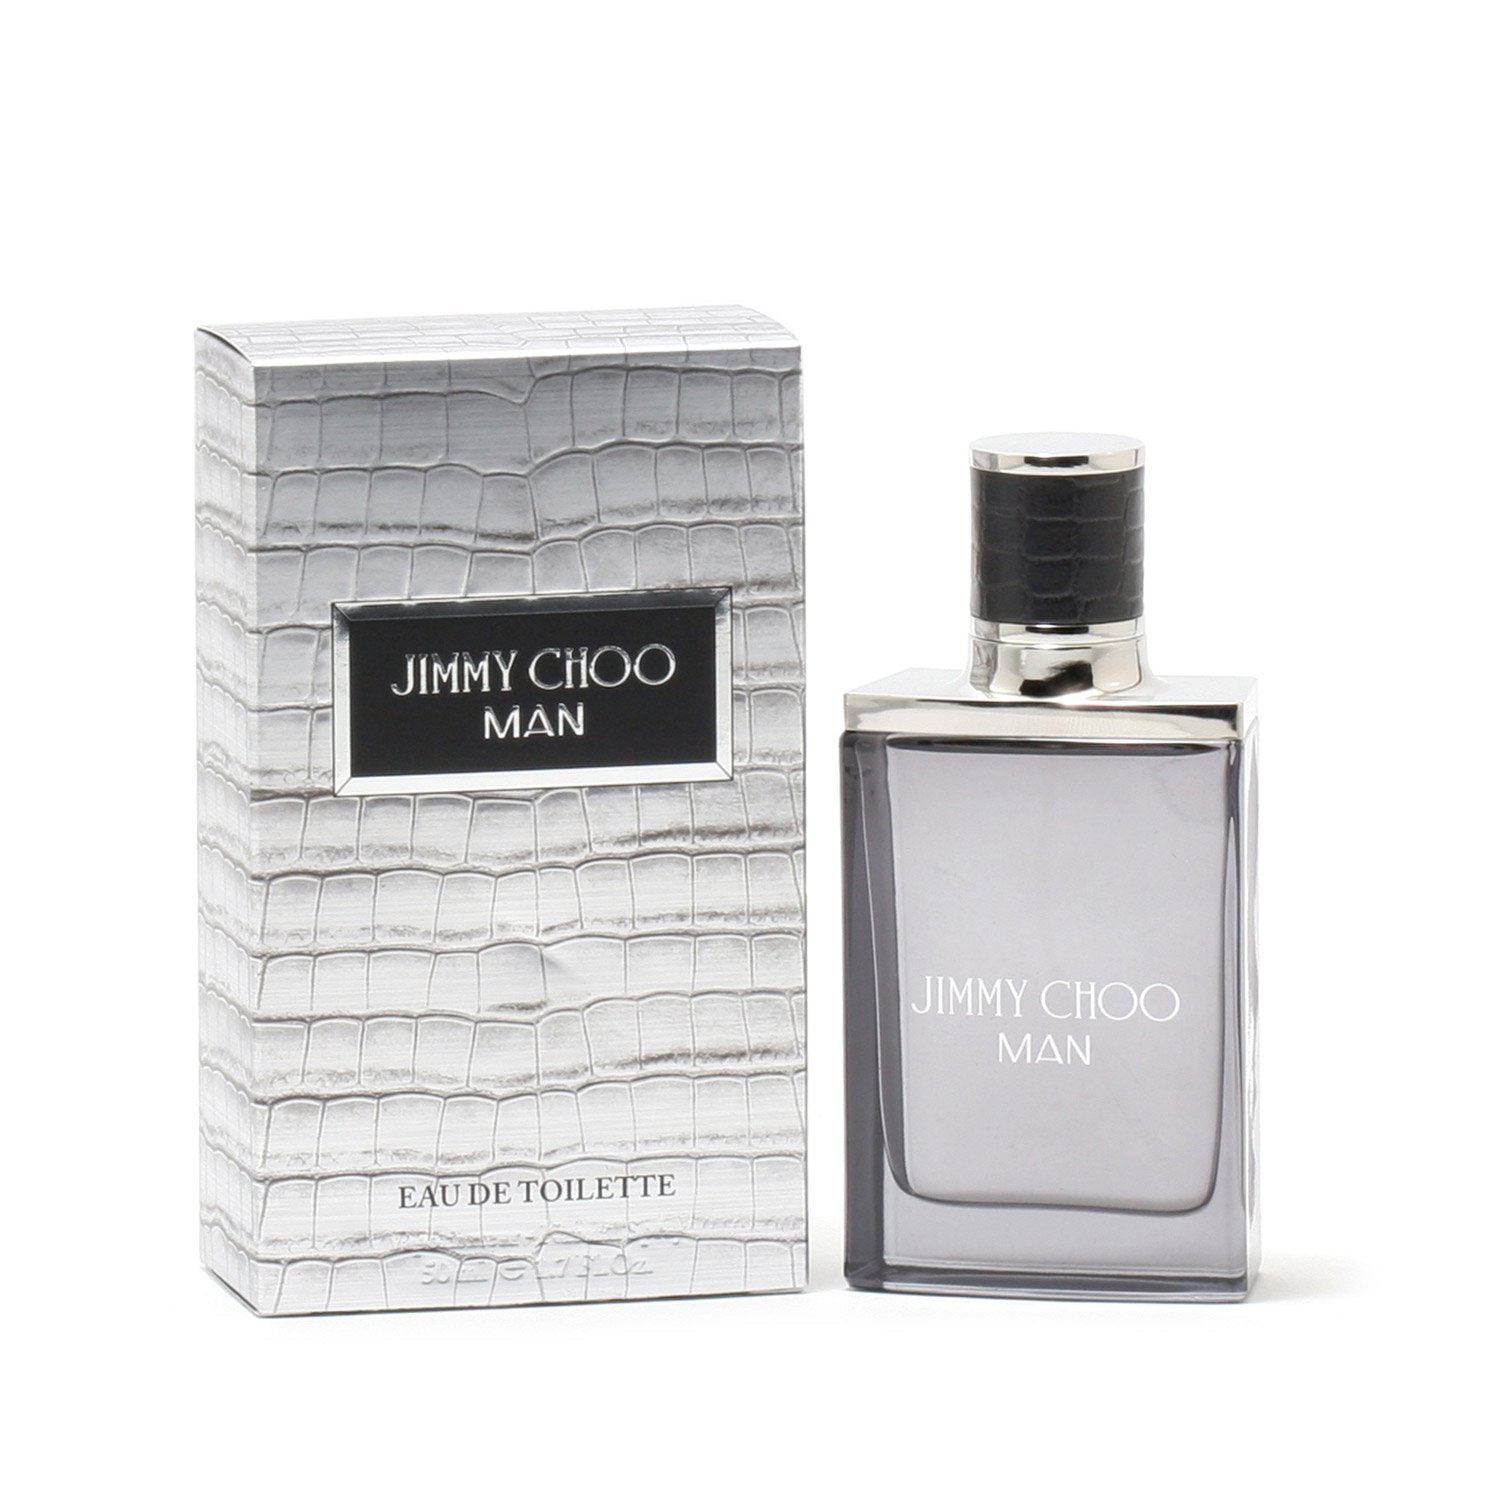 Cologne - JIMMY CHOO MAN - EAU DE TOILETTE SPRAY